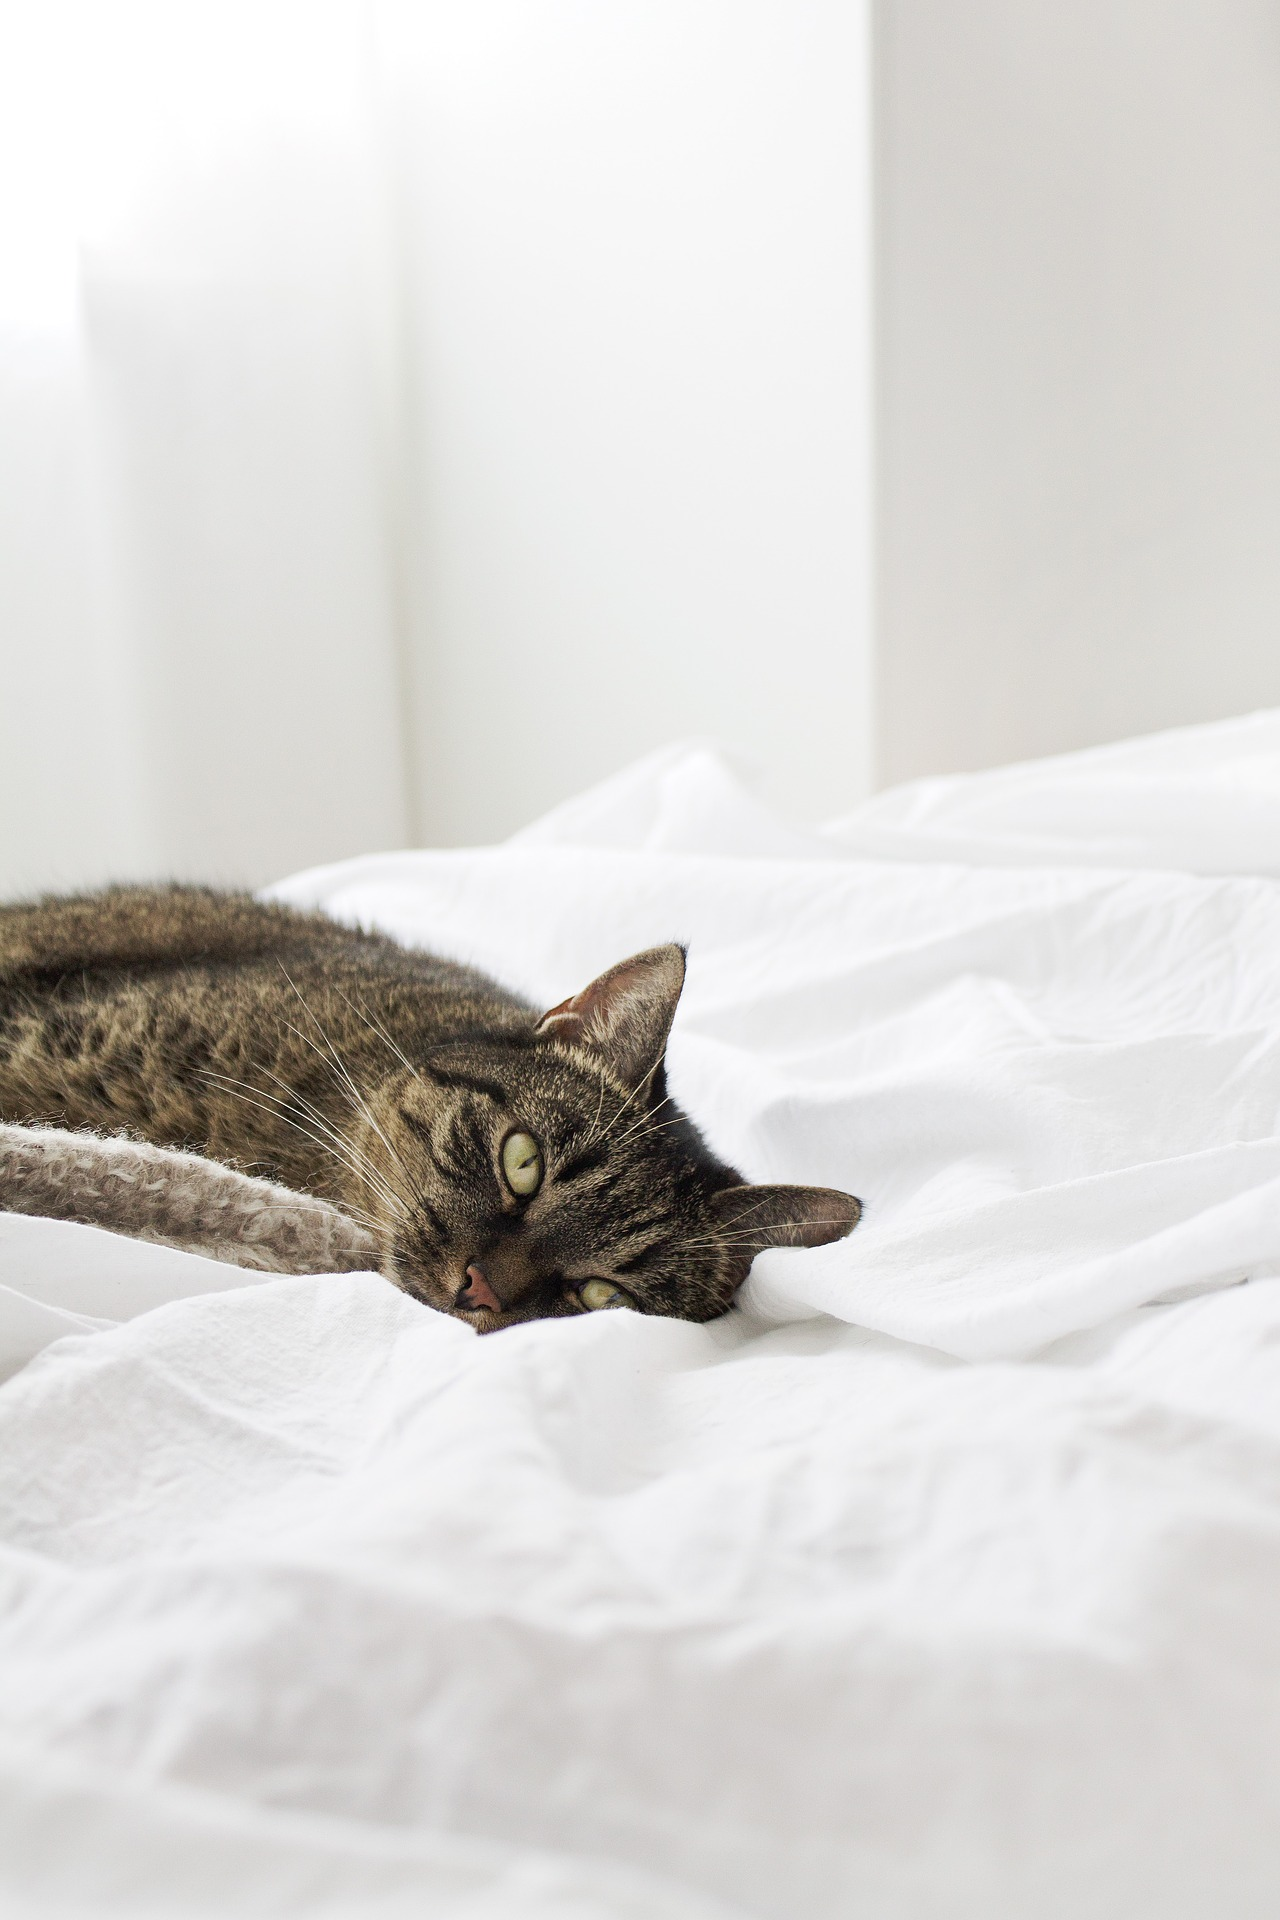 What are the Best Cat-Friendly Hotels? Our Top 4 Picks